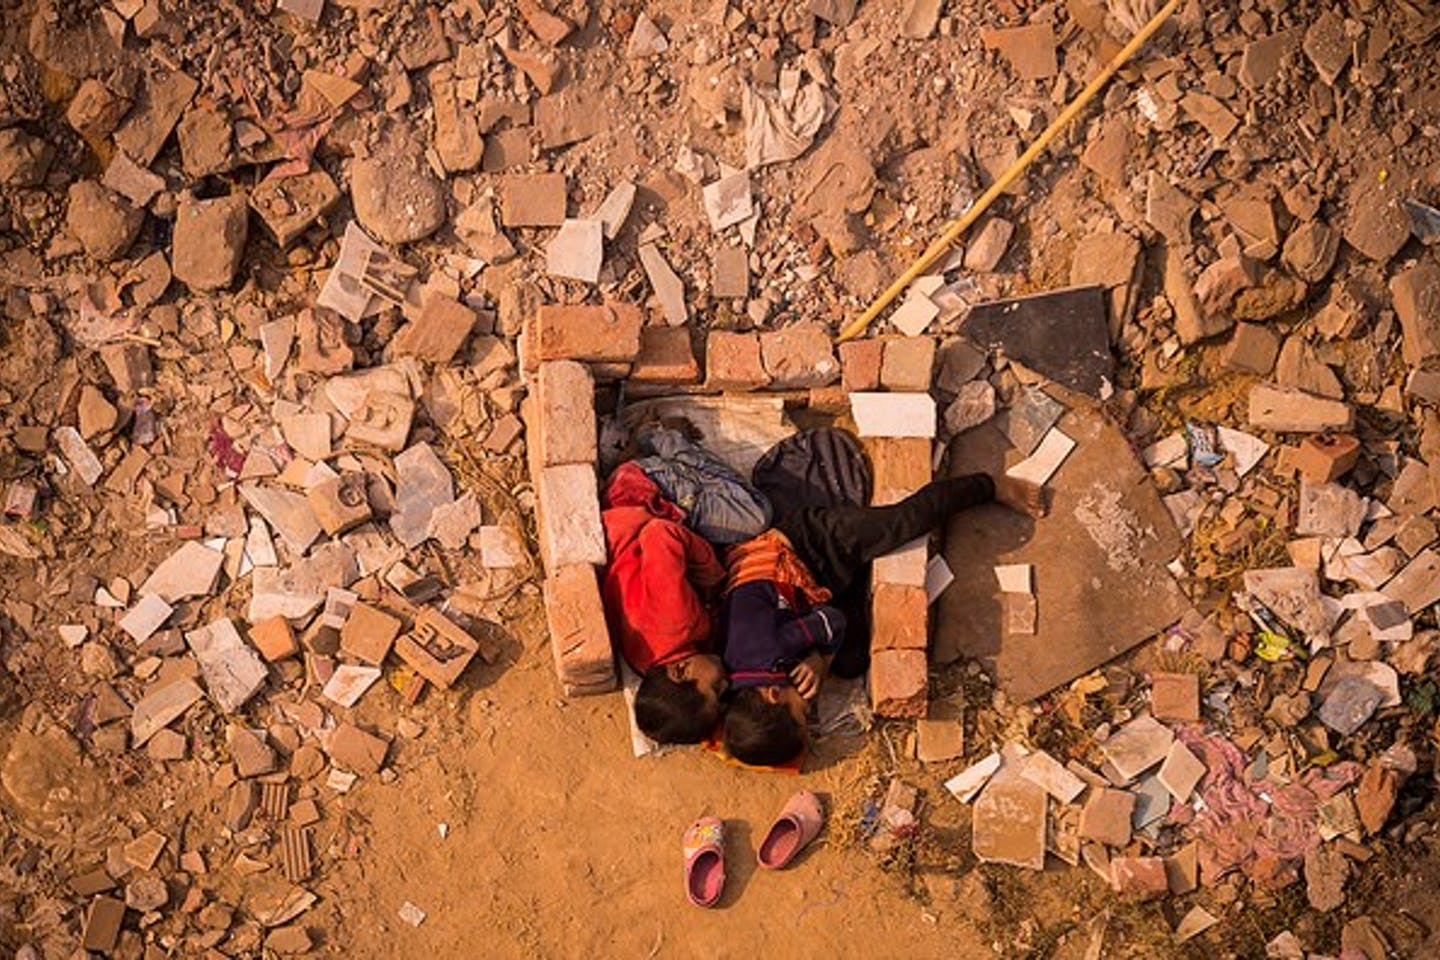 children play in dirt and bricks